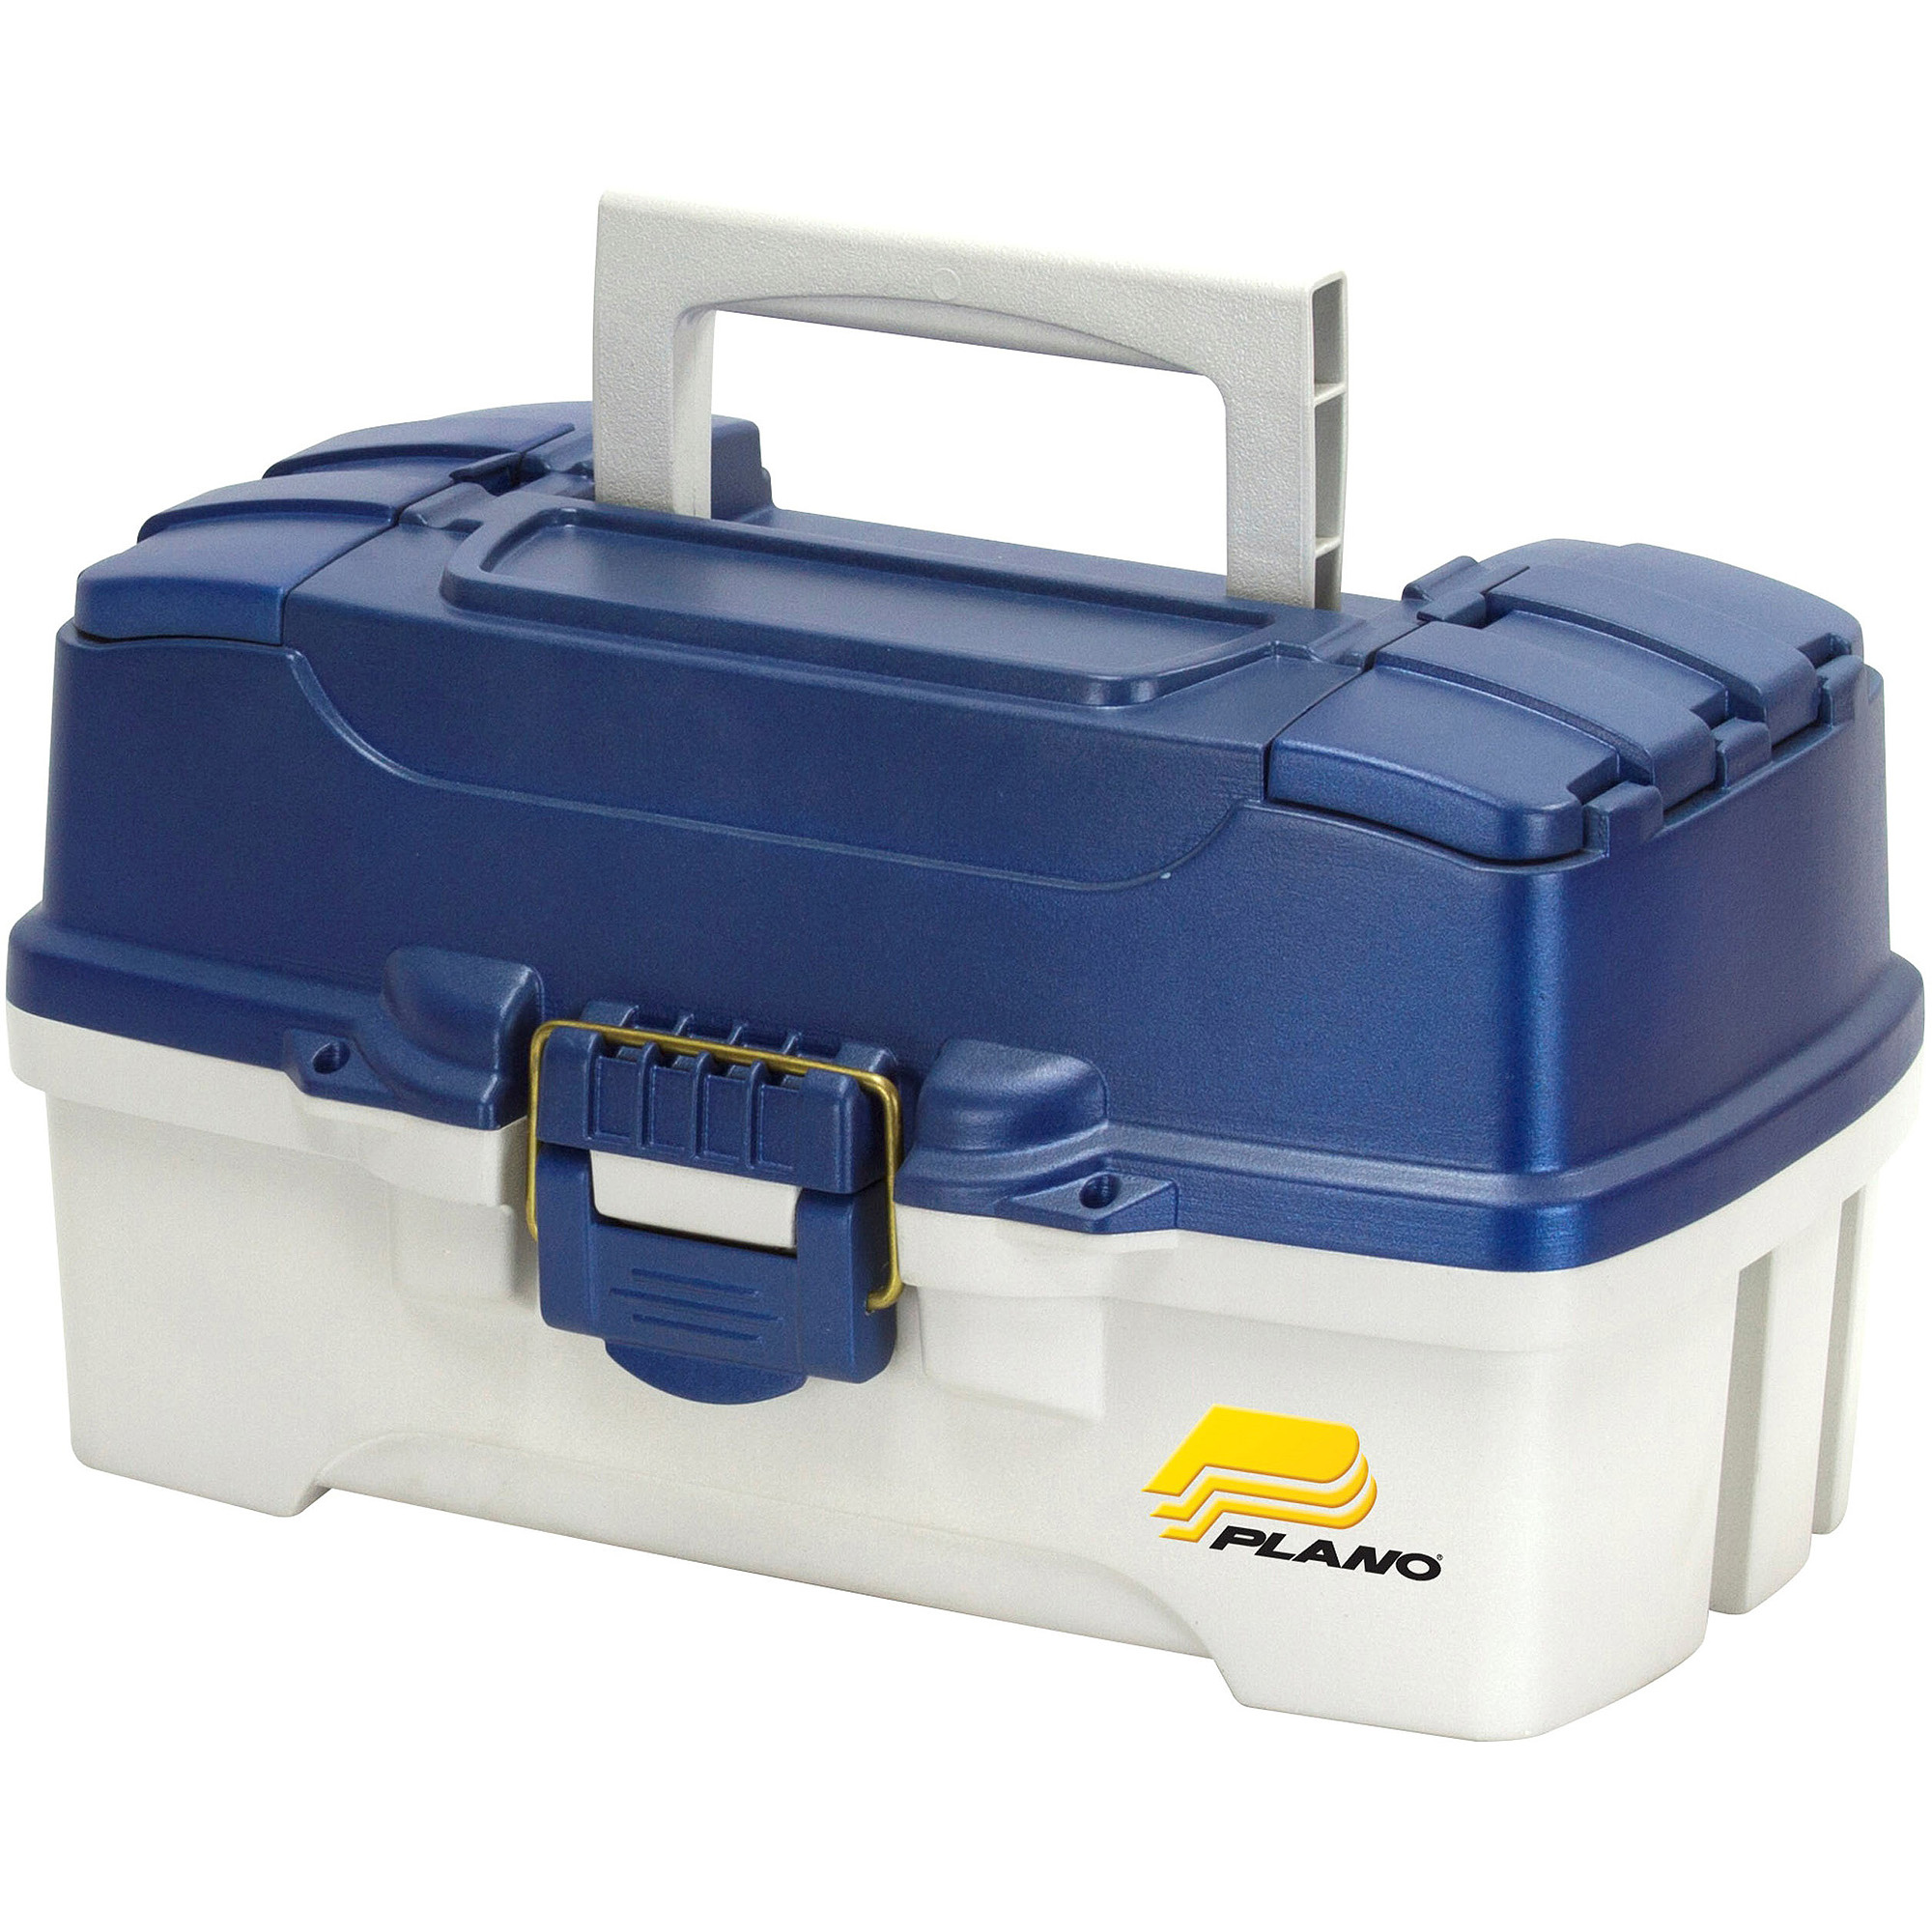 Plano Two-Tray Tackle Box by Plano Molding